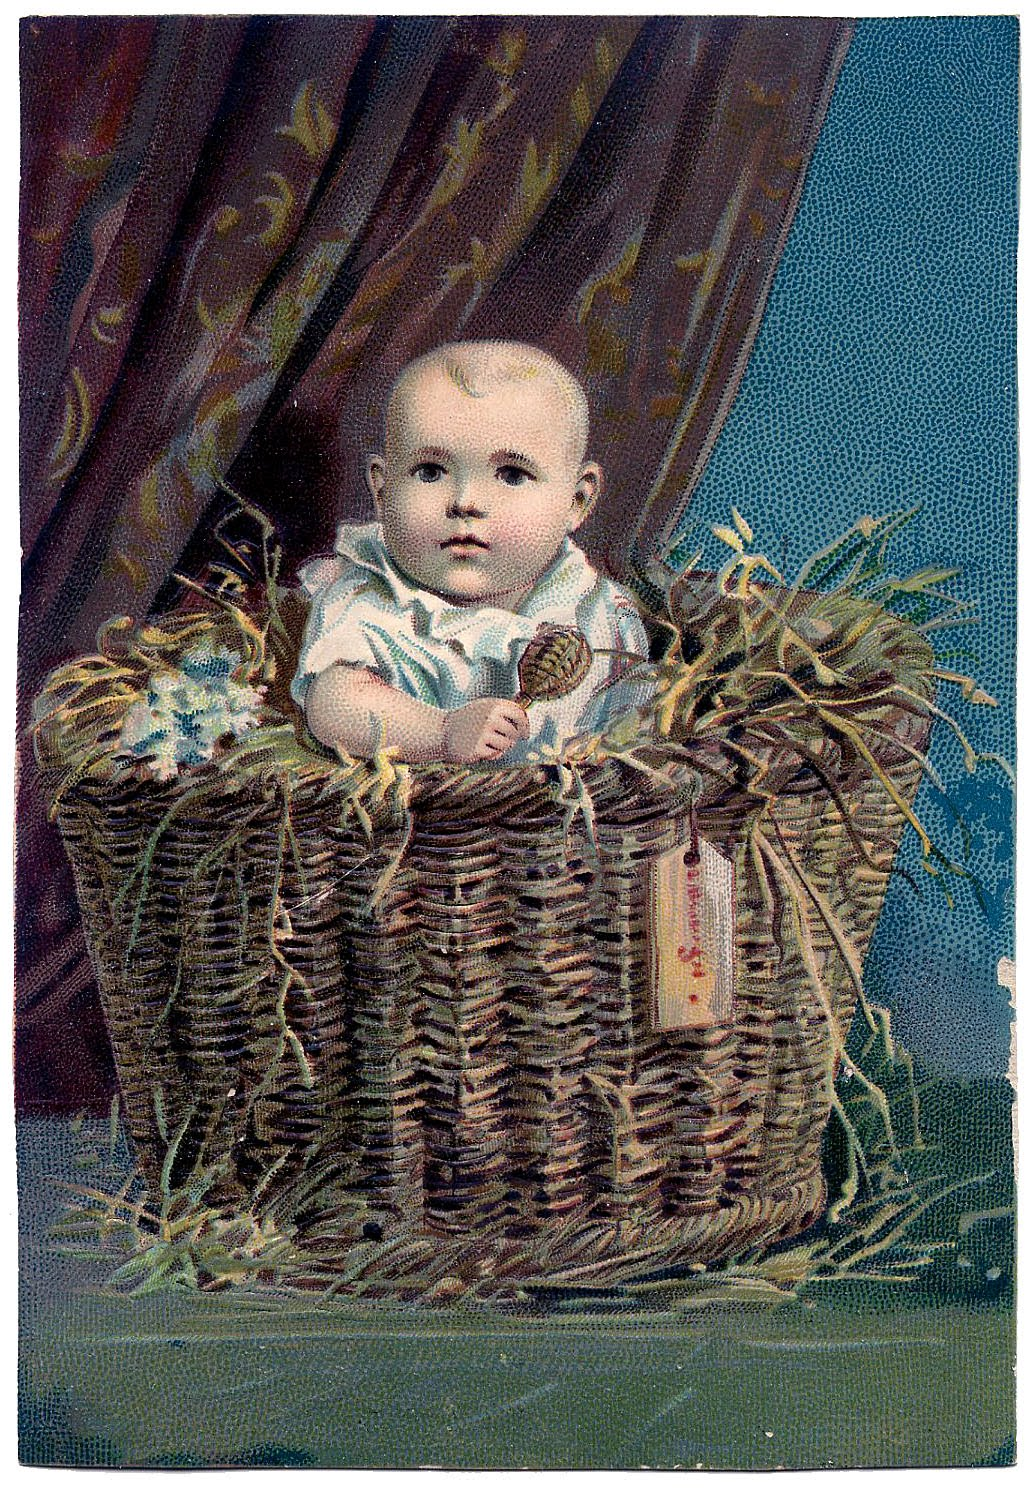 Art Basket Facebook : Vintage clip art sweetest baby in basket the graphics